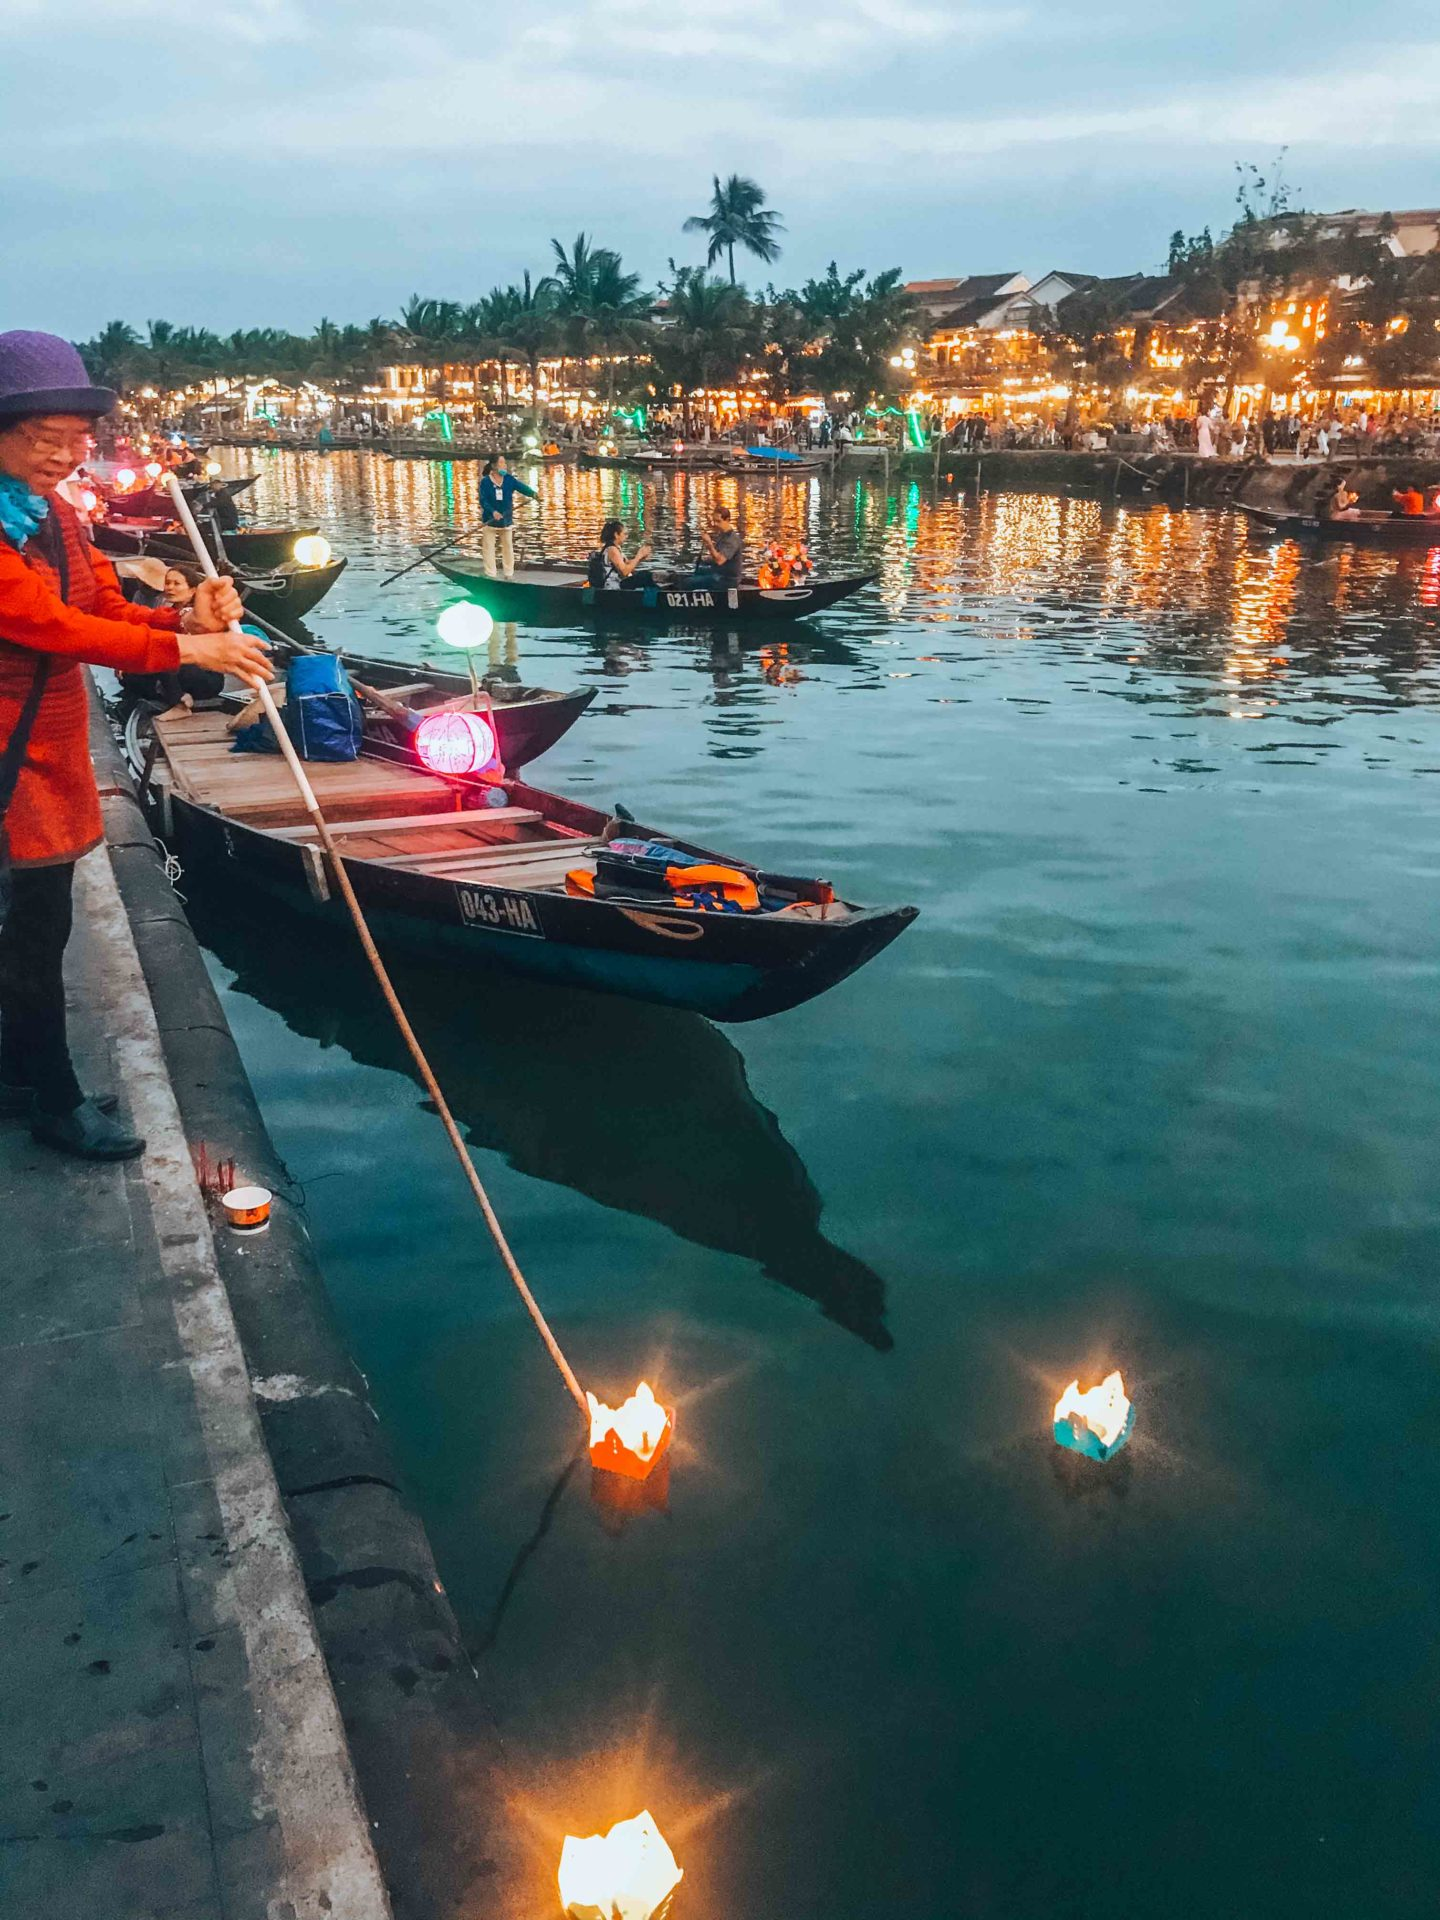 Hoi An river by night with magical lanterns and lights